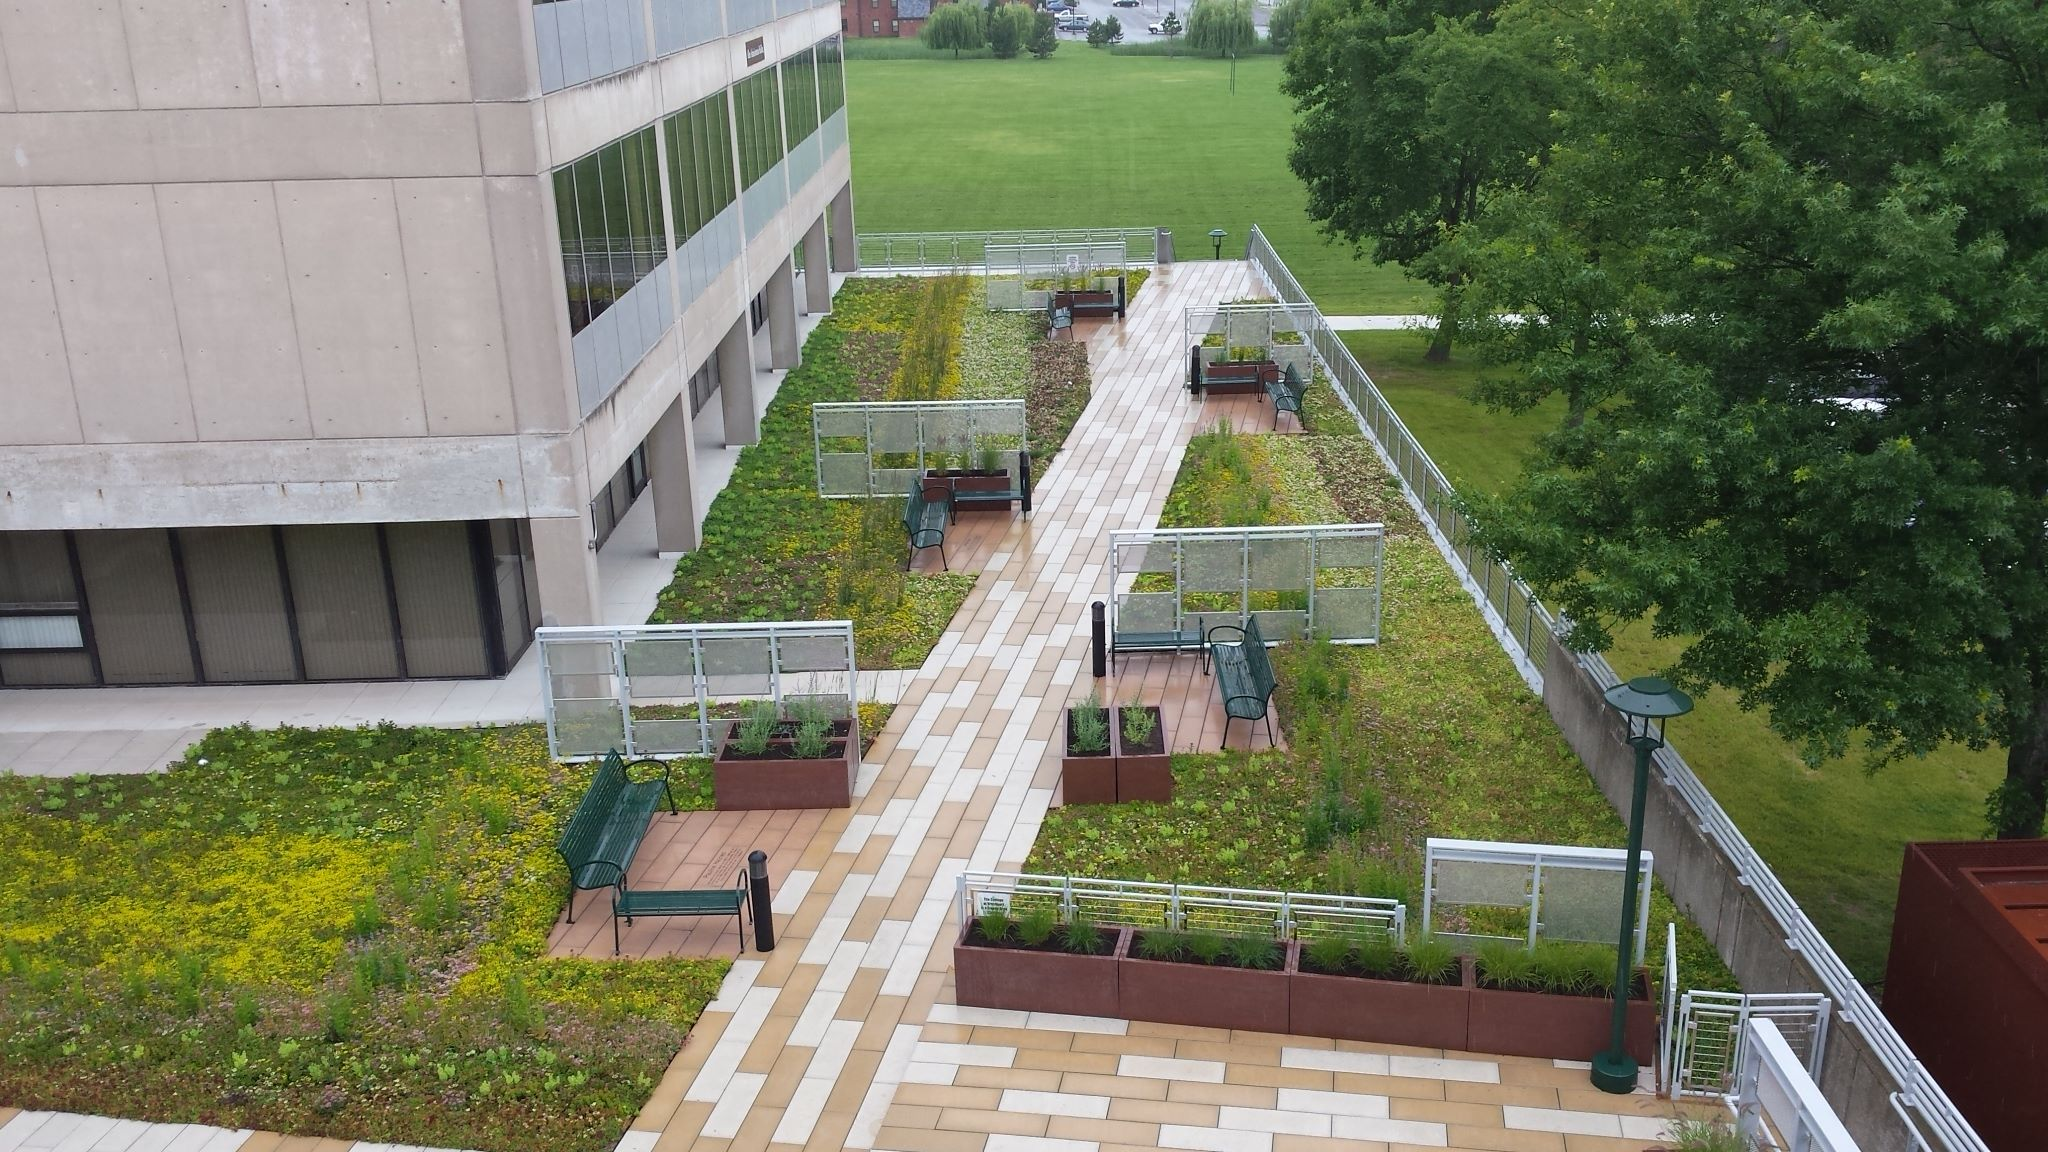 SUNY College of Brockport's Completed Green Roof Brings Designer's Vision to Life.